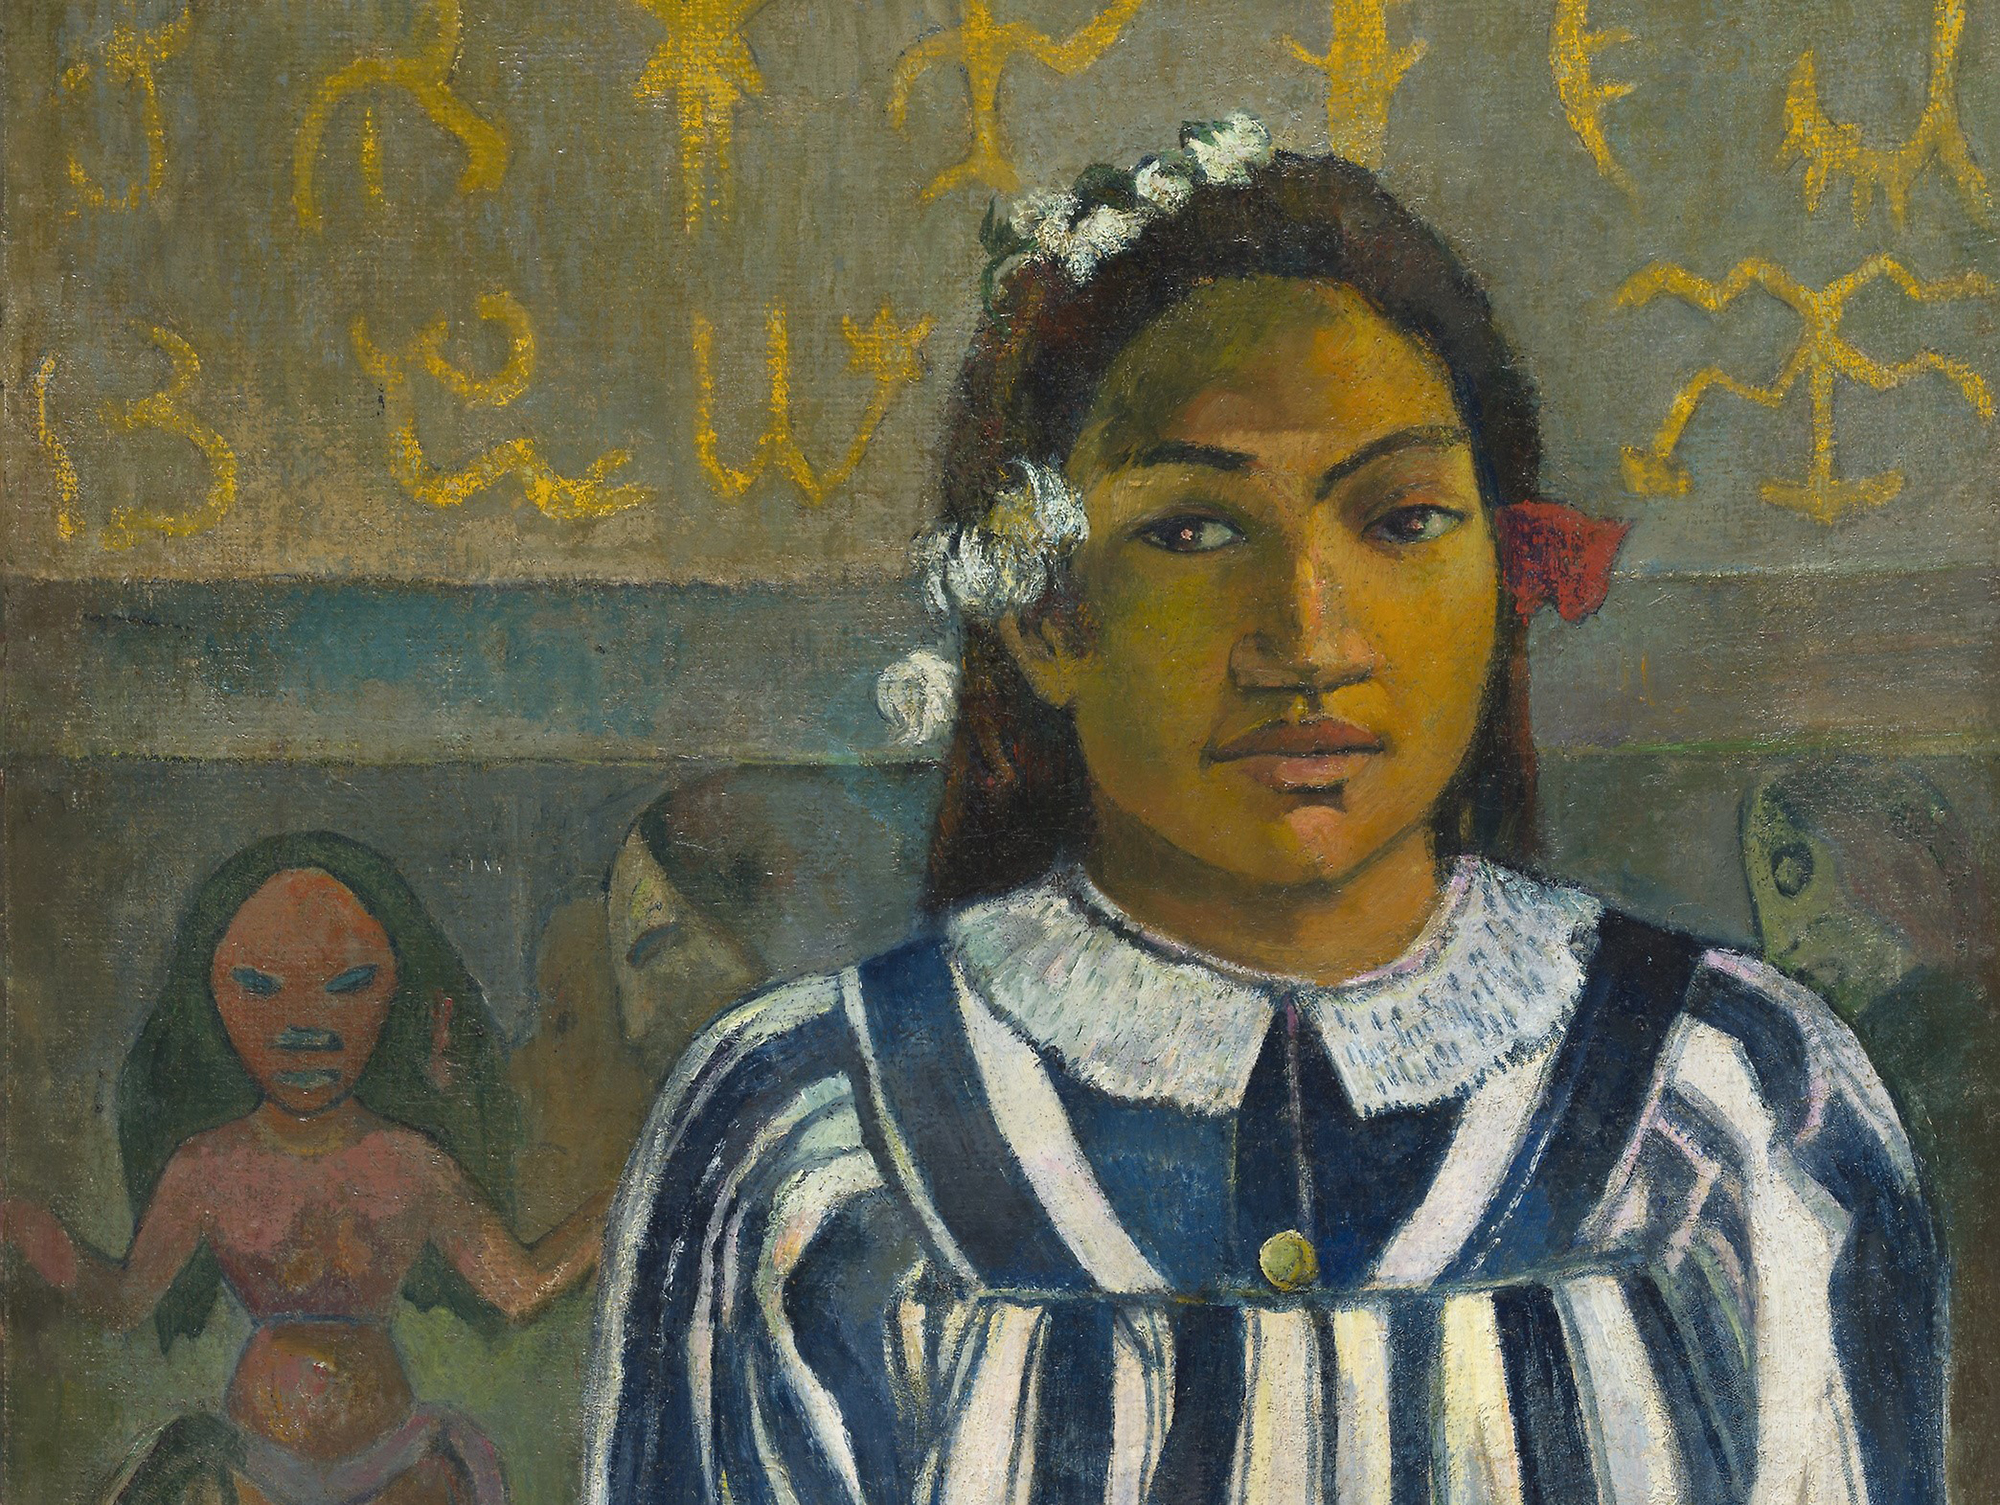 Image 1 of the Gauguin from the National Gallery, London gallery